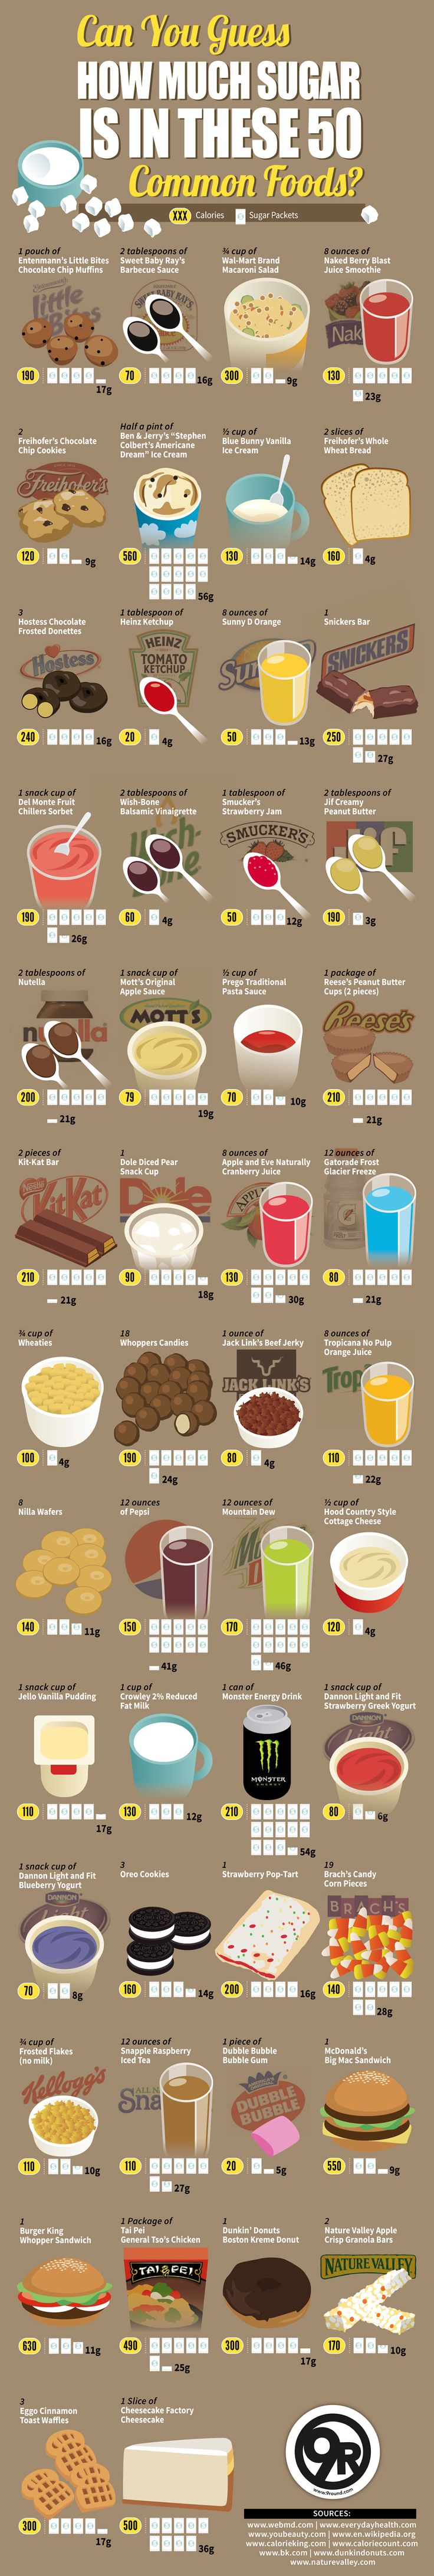 Amount of Sugar Content in Common Foods Chart. Topic: sweet food, grocery items, sugary snack, obesity, diabetes, health.